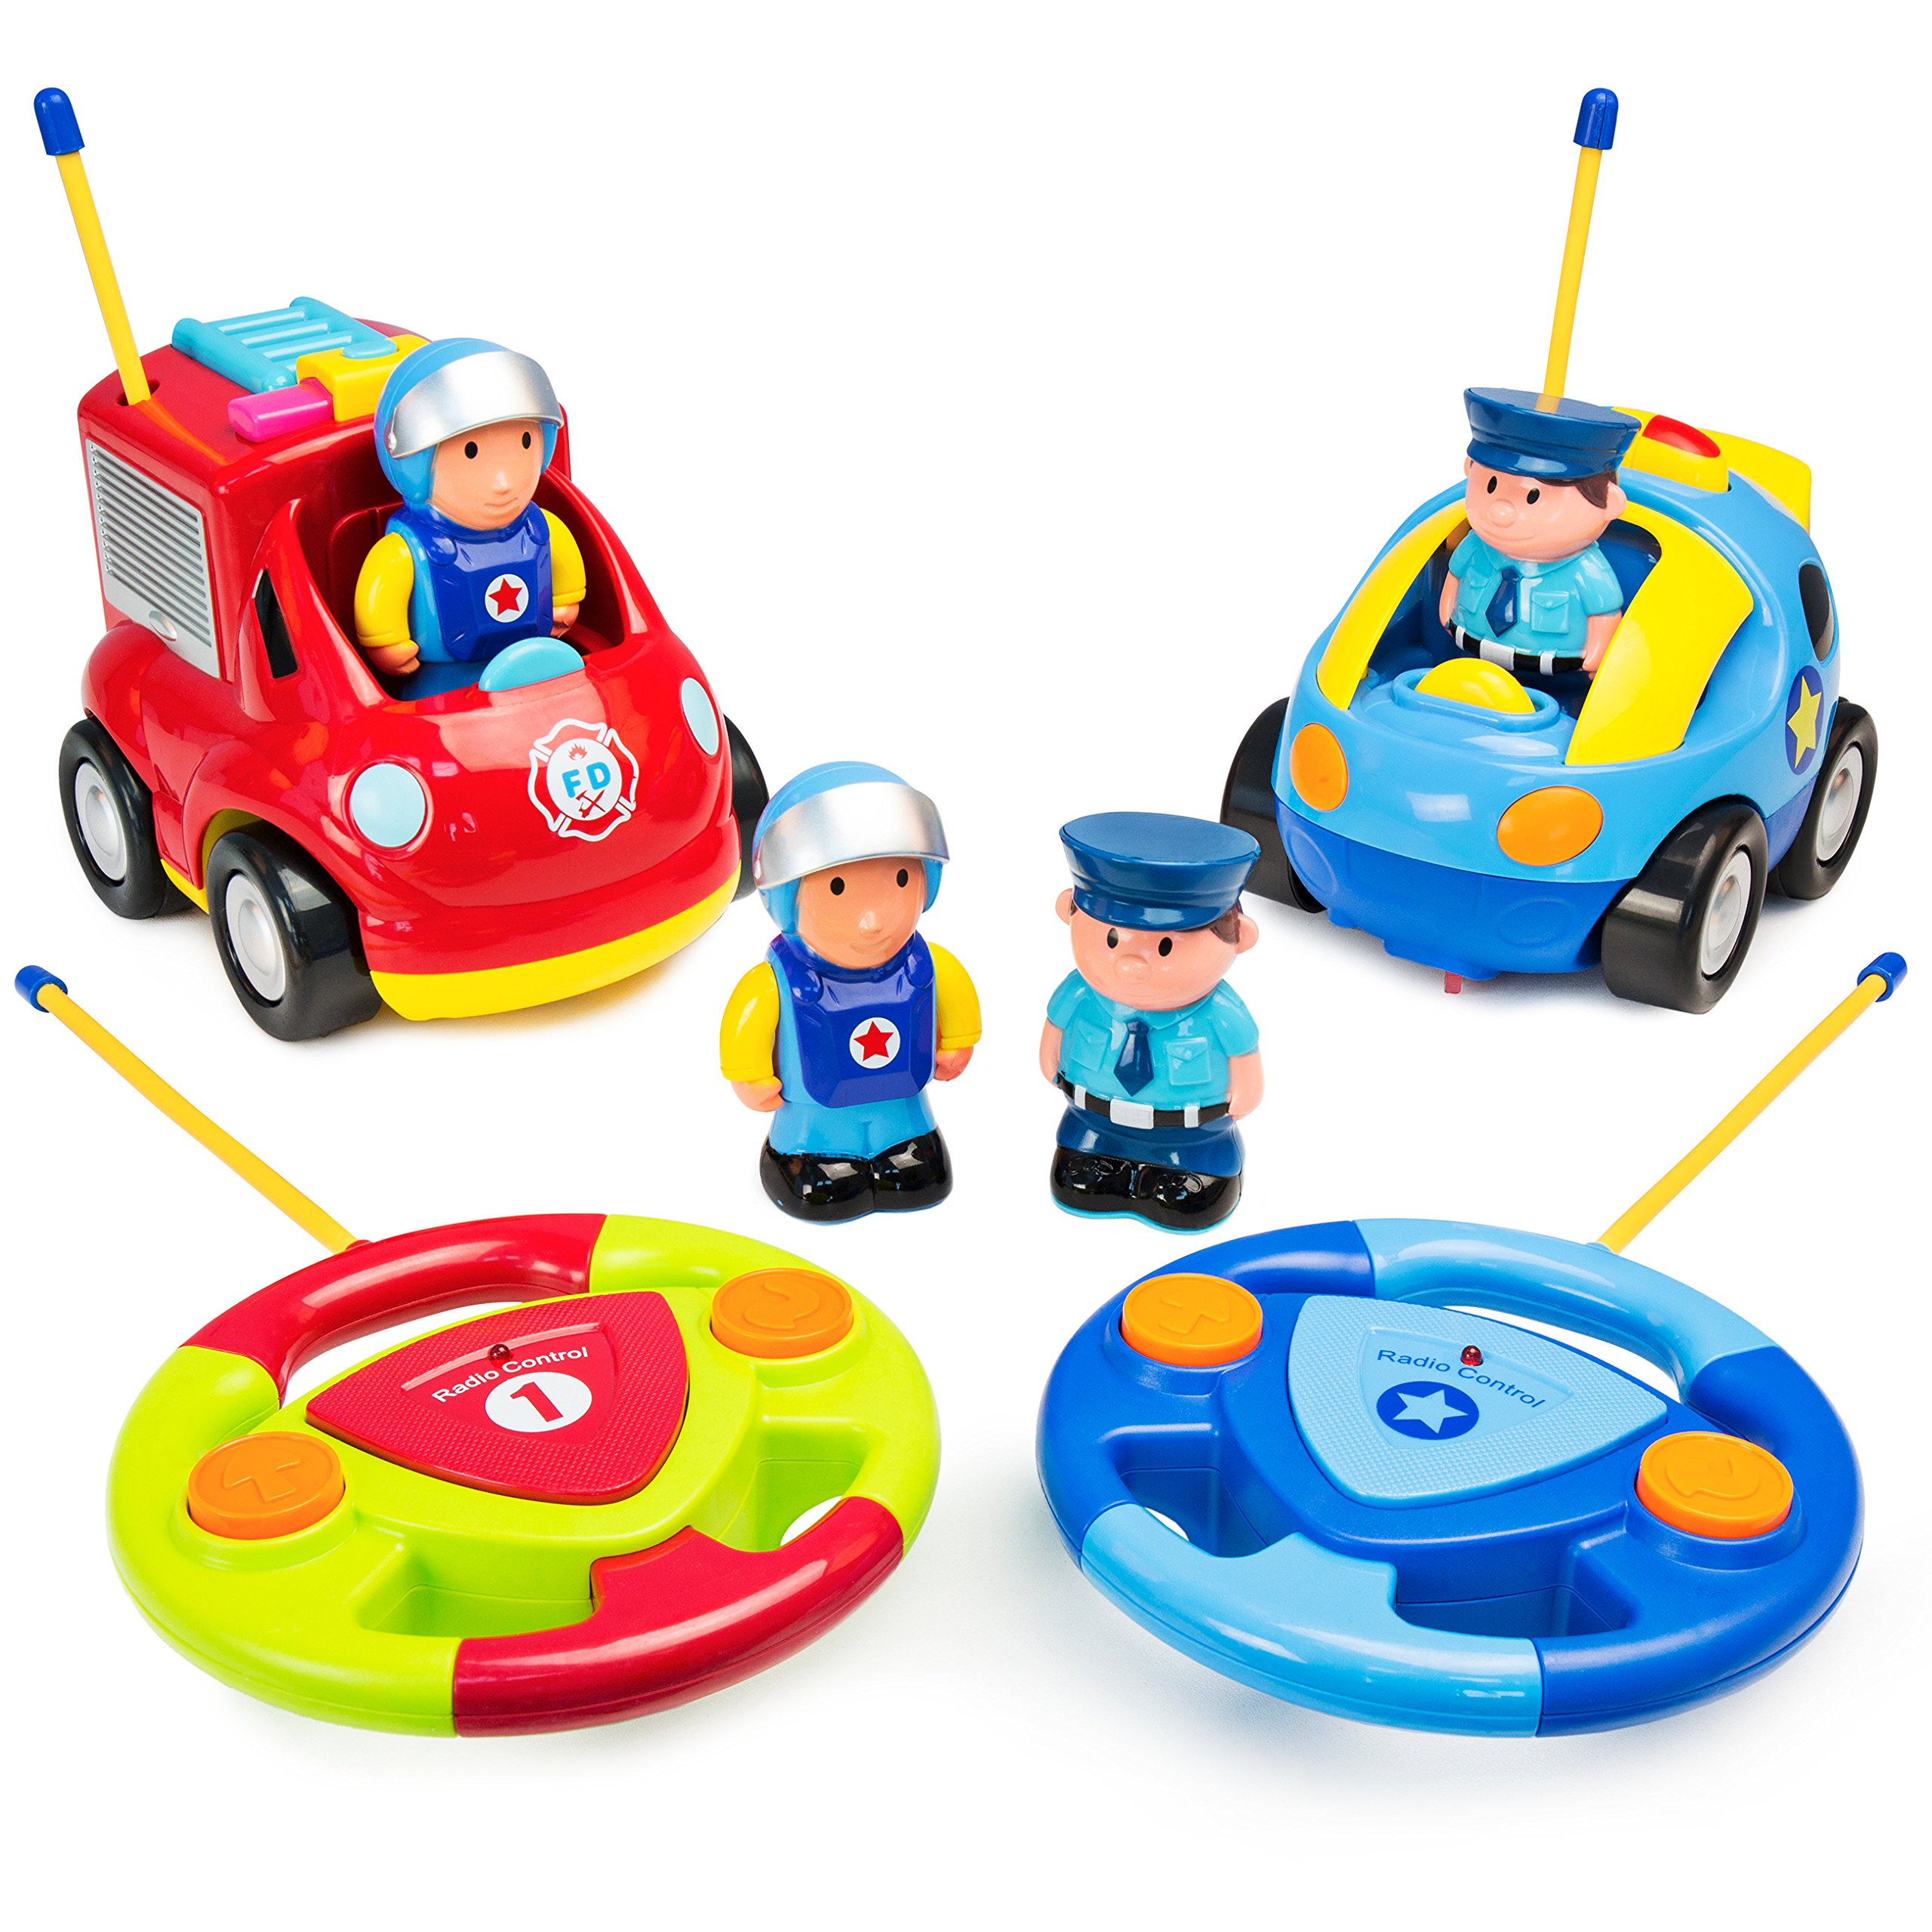 Police Car RC Fire truck Toys For Boys Kids Toddler 3 4 5 6 Age